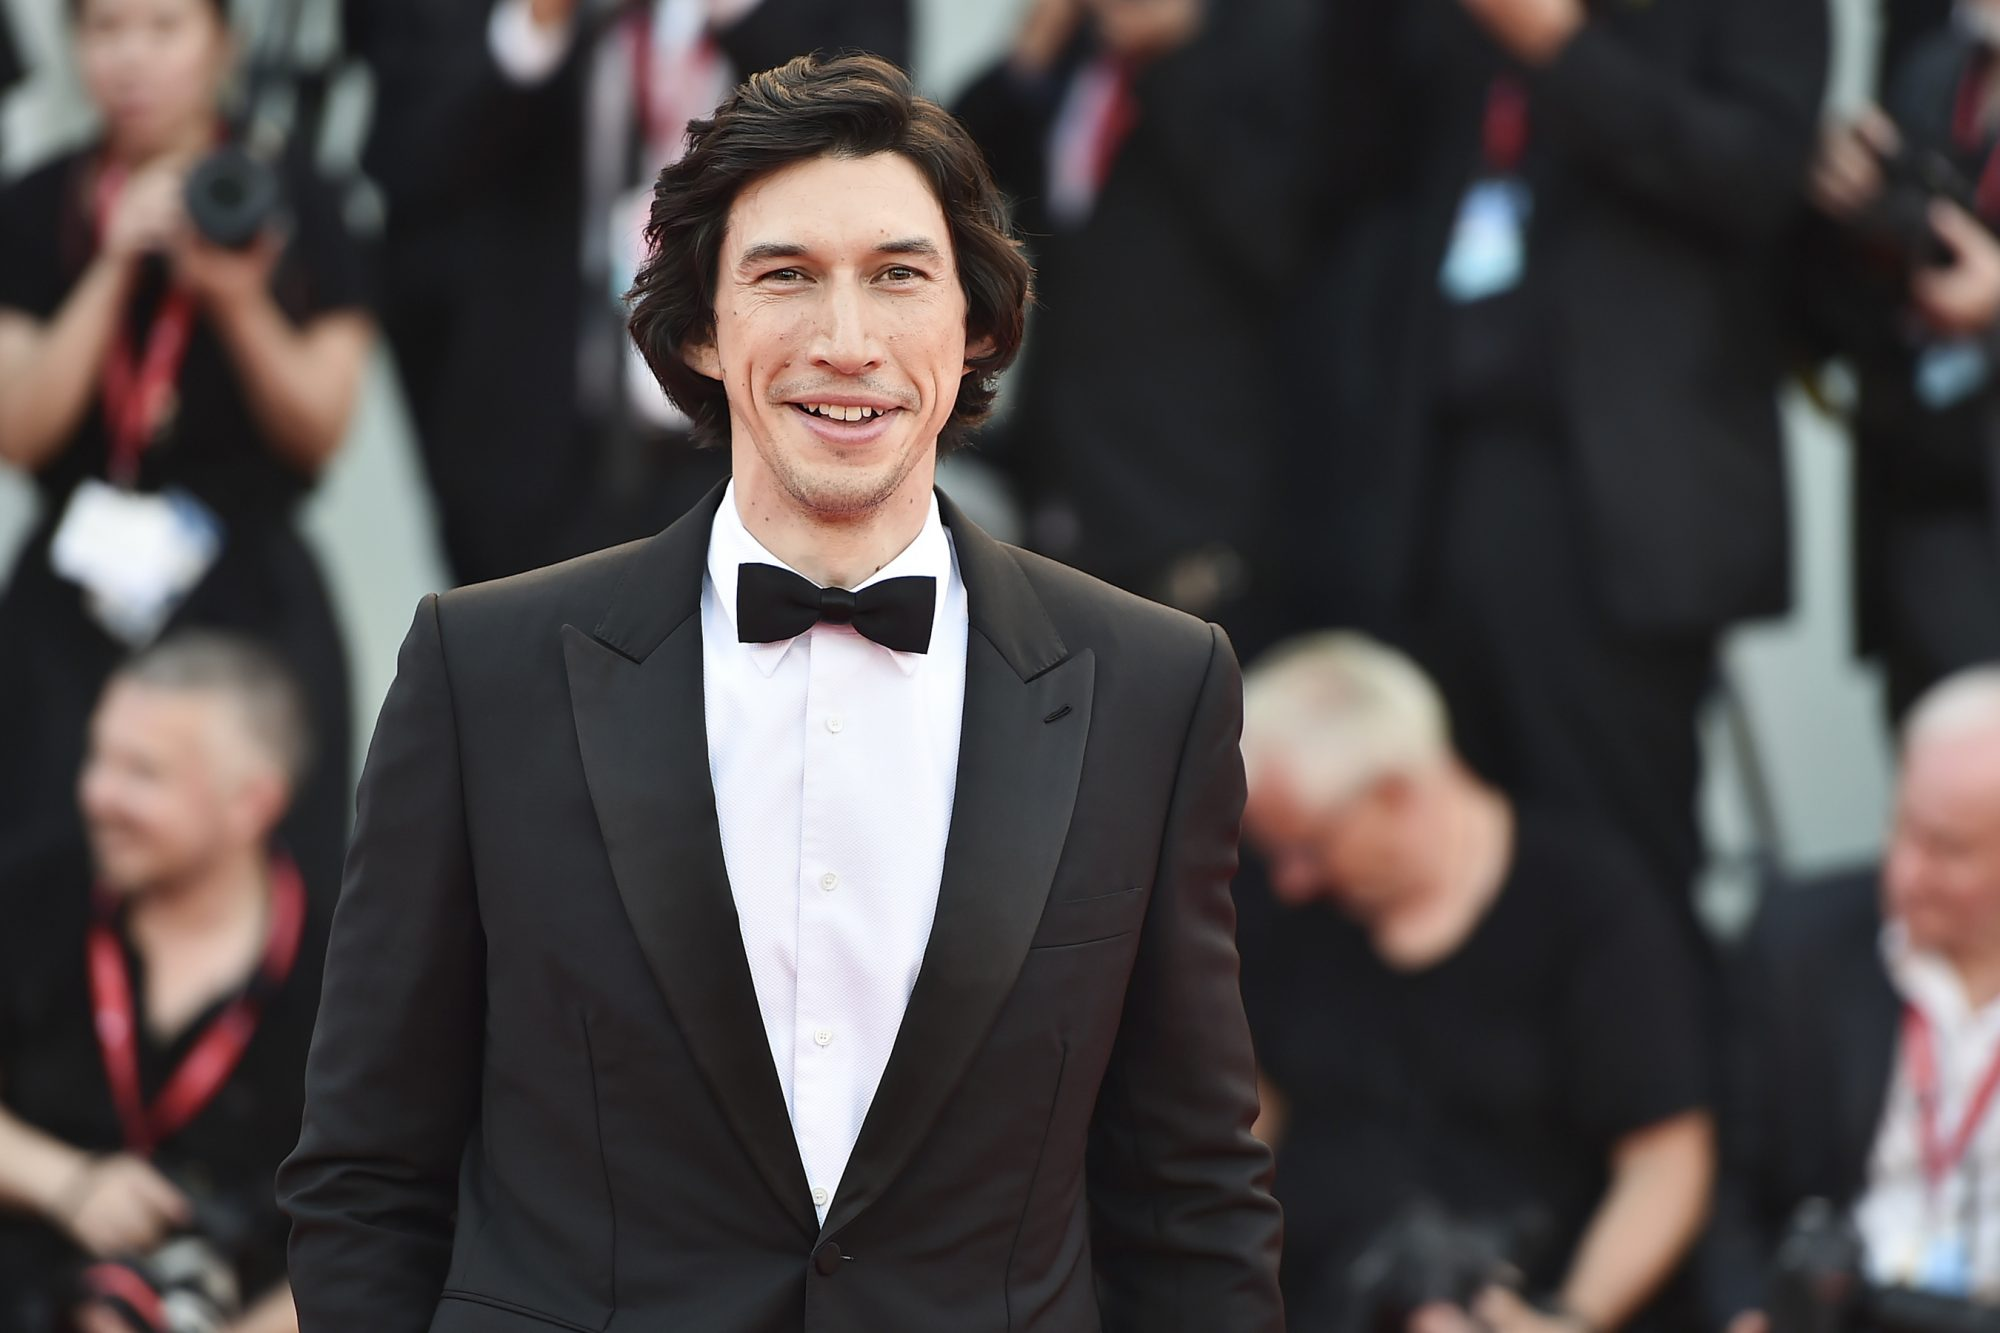 """VENICE, ITALY - AUGUST 29: Adam Driver walks the red carpet ahead of the """"Marriage Story"""" screening during during the 76th Venice Film Festival at Sala Grande on August 29, 2019 in Venice, Italy. (Photo by Theo Wargo/Getty Images)"""